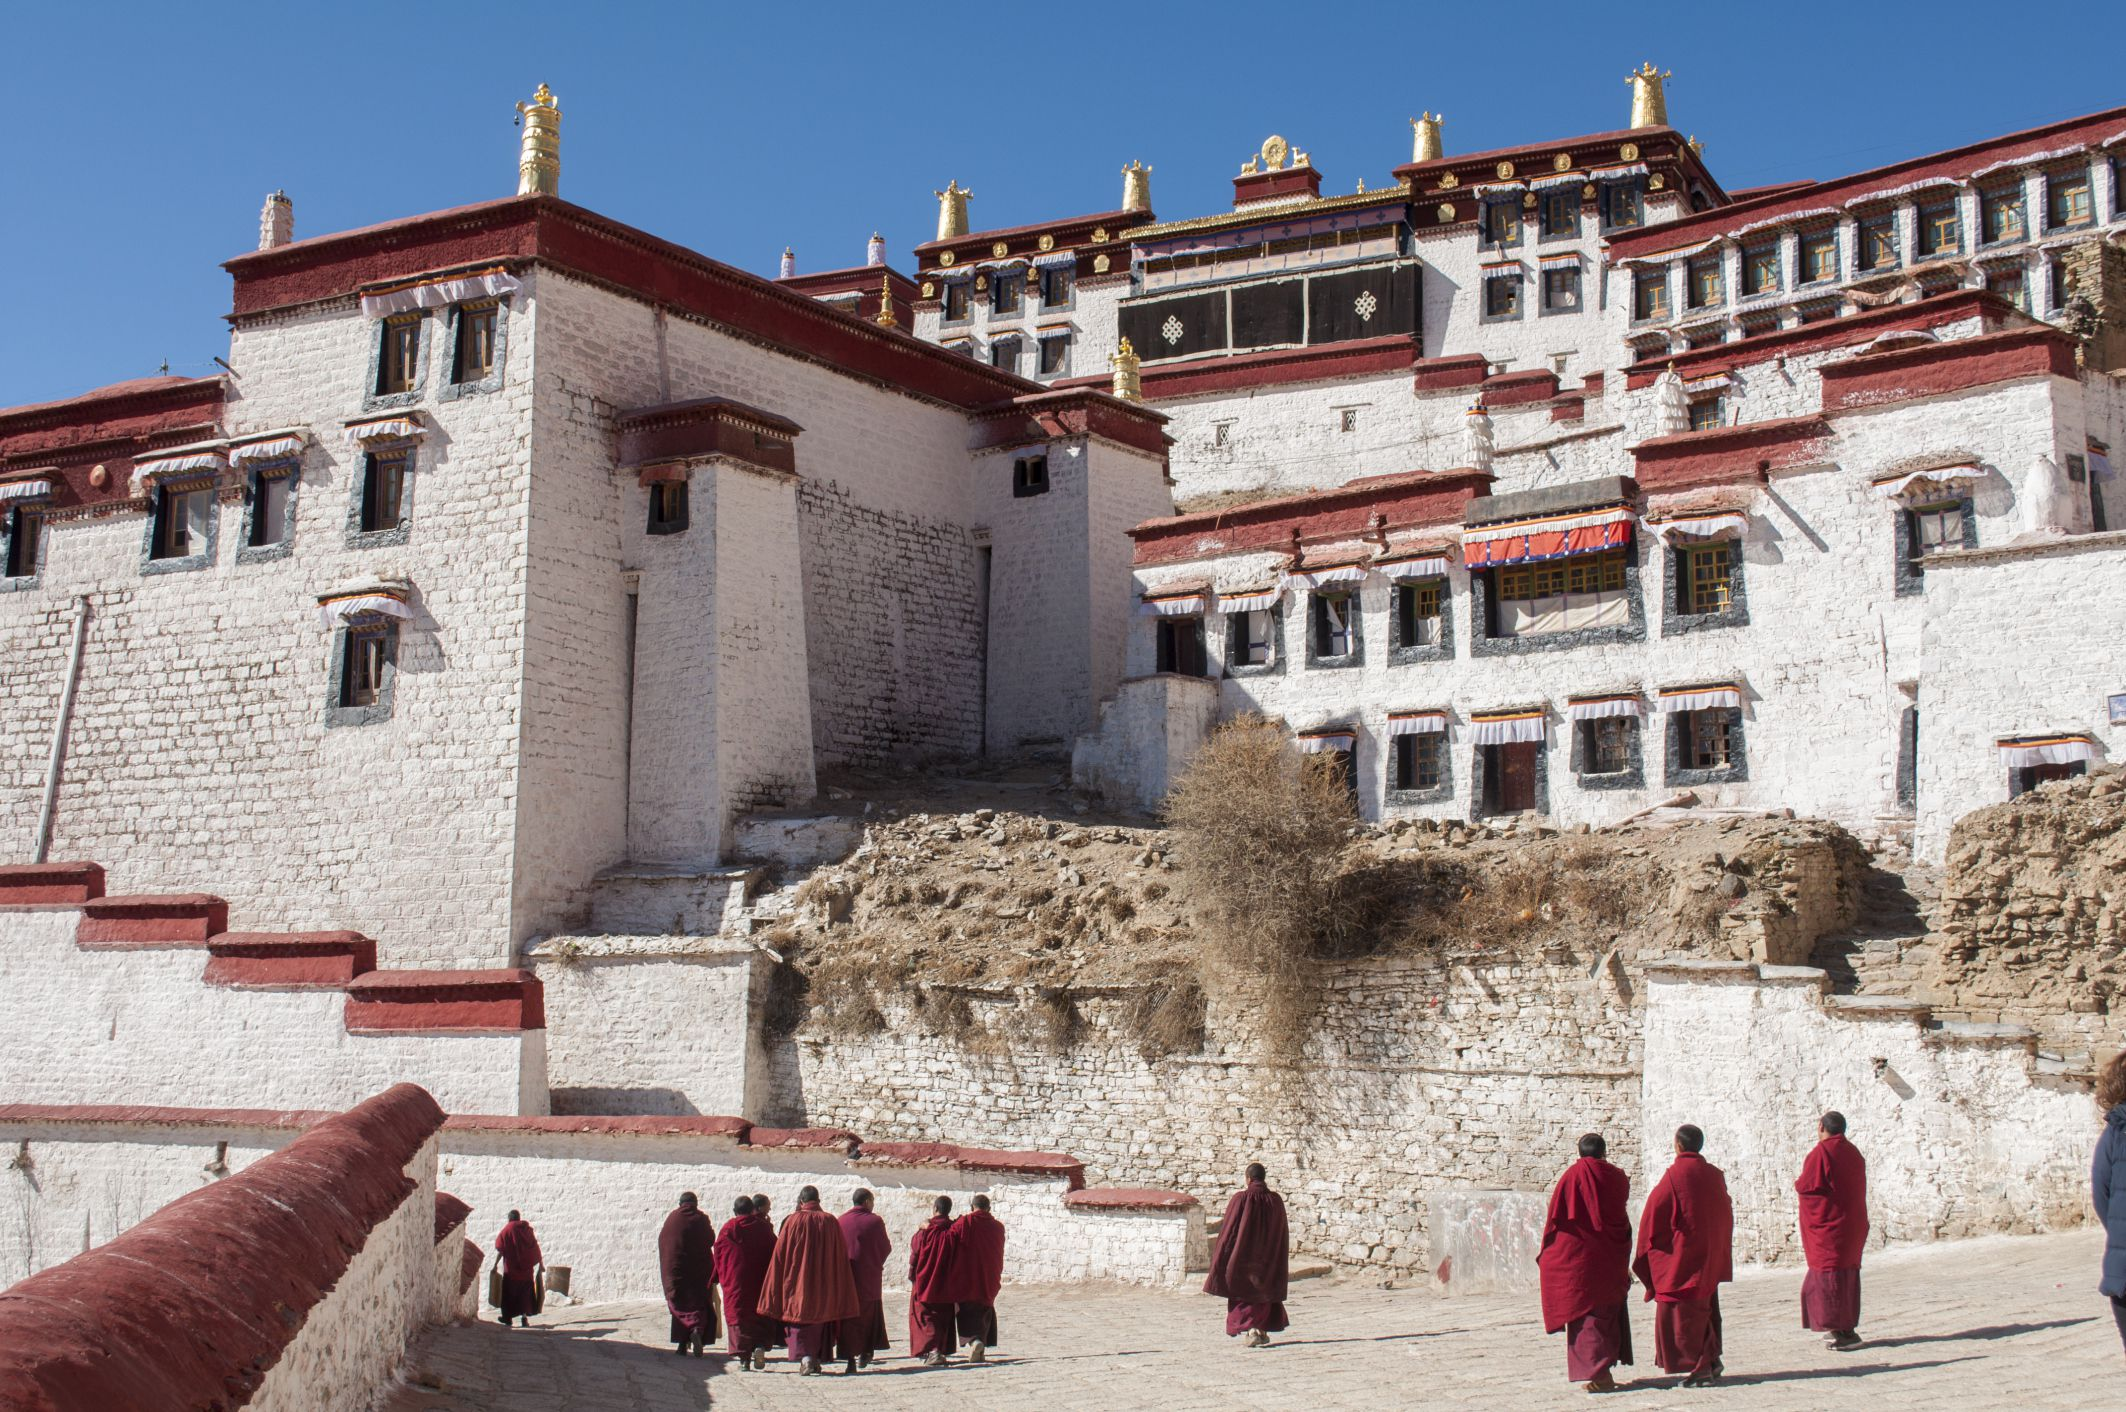 tibetans of china The monk doused his robes in kerosene then set himself alight, running with  flames blazing about 200 metres down the street outside the kirti.